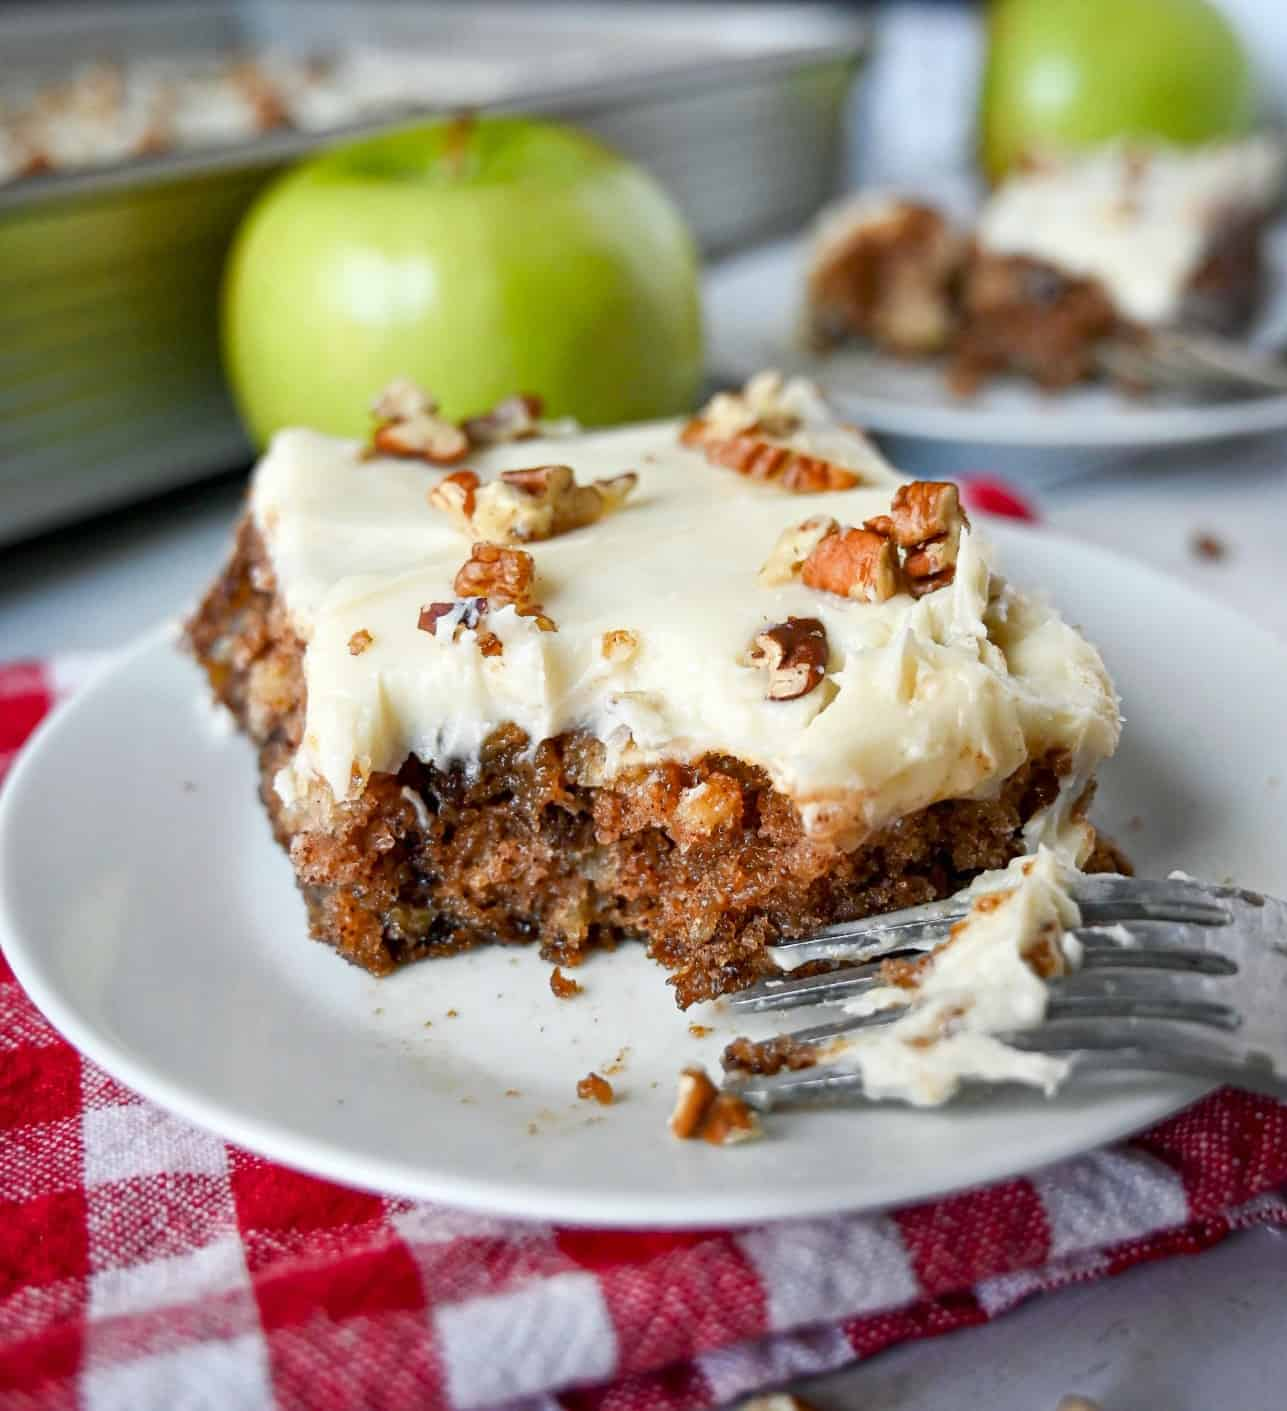 Apple cake with cream cheese frosting and pecans on top of a wgite plate and a fork on the side.